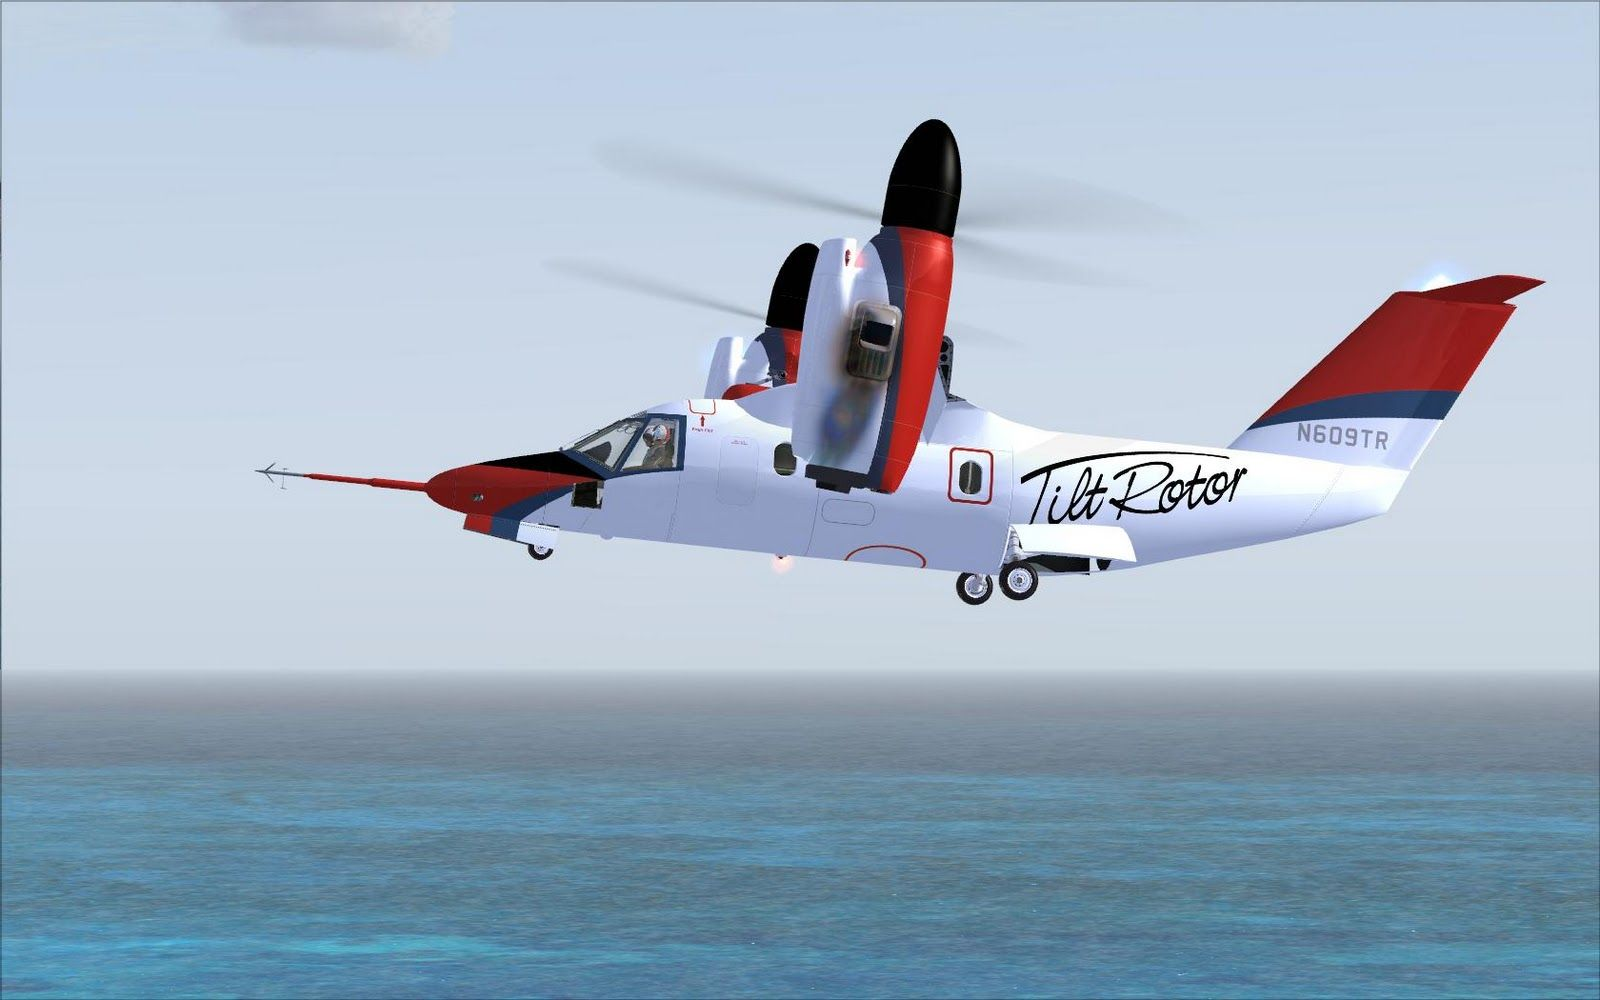 AgustaWestland AW609   Helicopter, Aircraft, Aviation